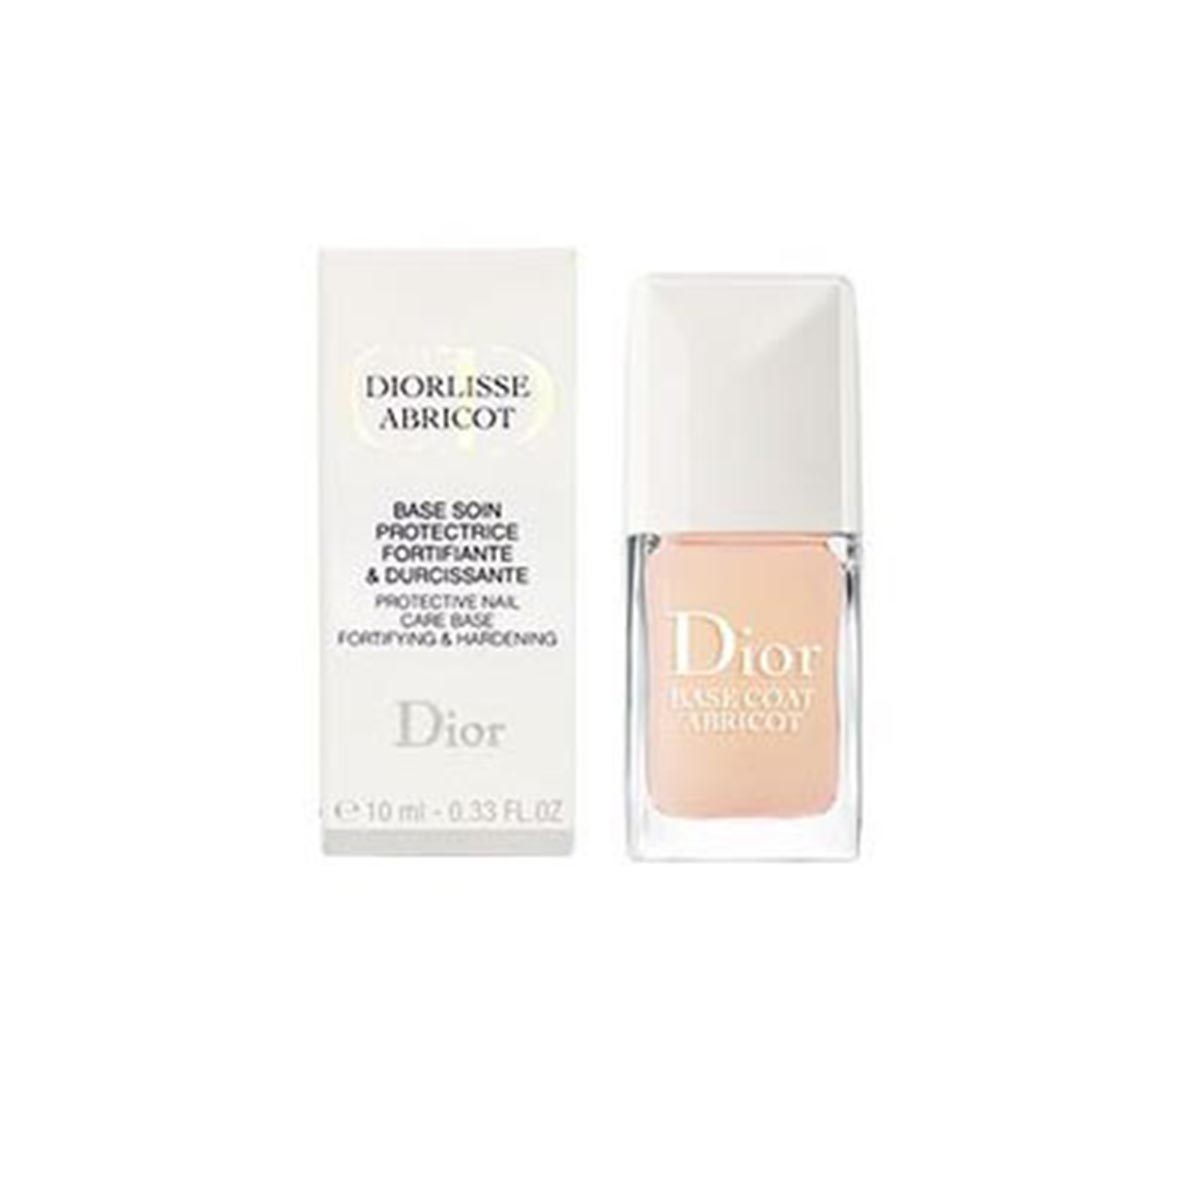 Dior u as coll base coat abricot